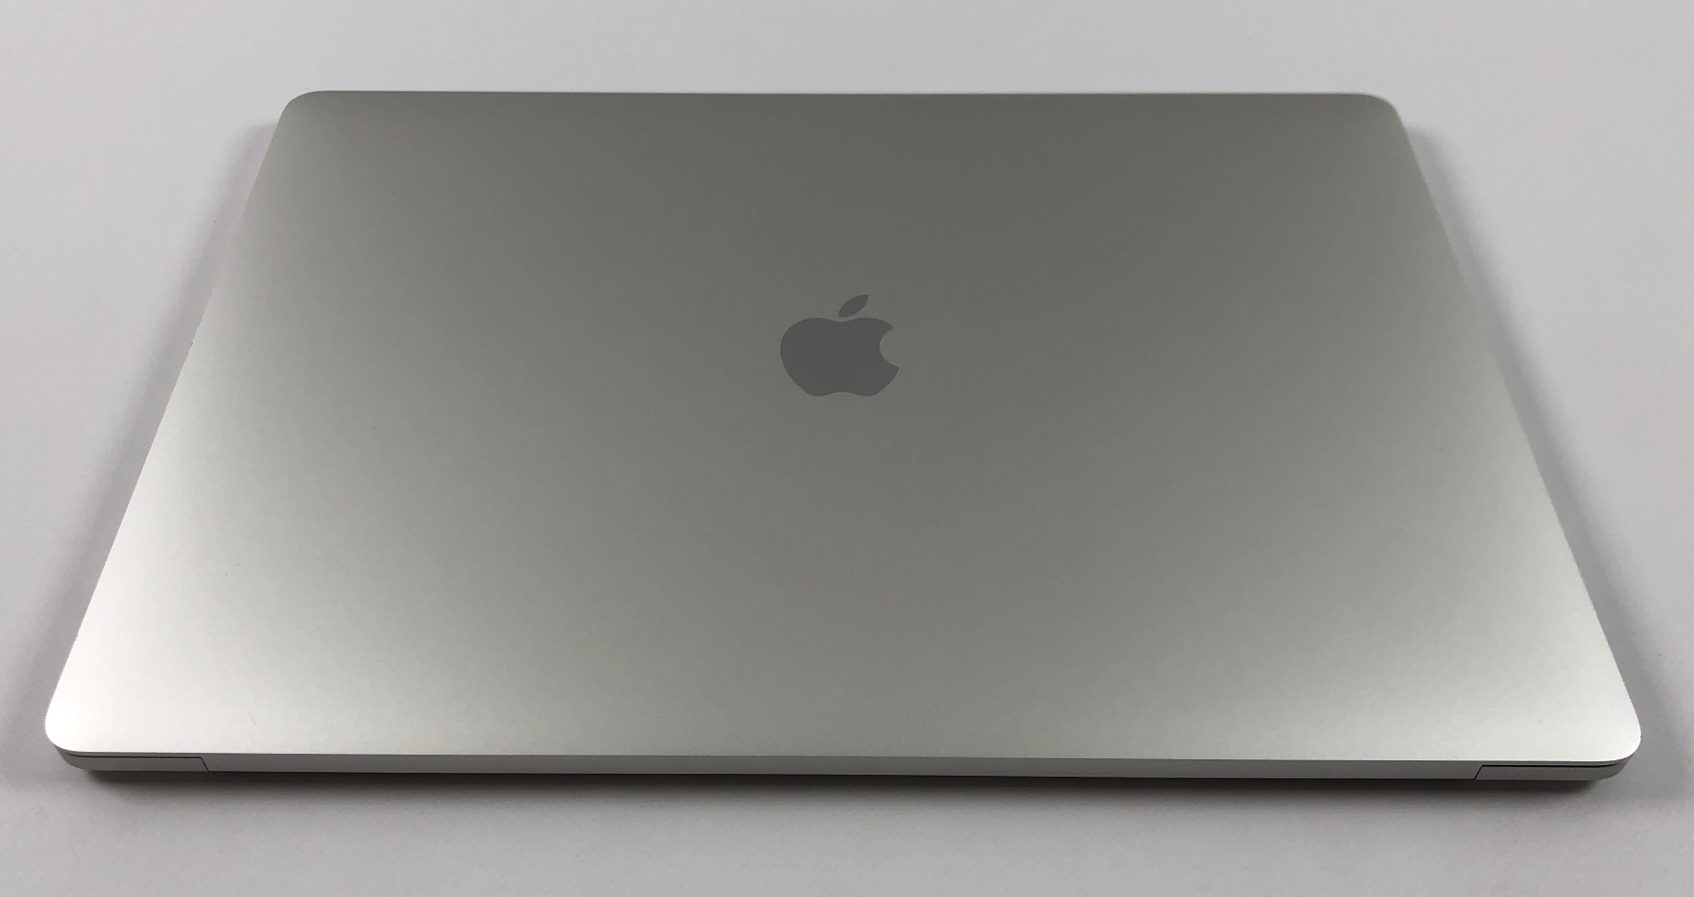 """MacBook Pro 15"""" Touch Bar Mid 2018 (Intel 6-Core i7 2.2 GHz 16 GB RAM 256 GB SSD), Silver, Intel 6-Core i7 2.2 GHz, 16 GB RAM, 256 GB SSD, bild 2"""